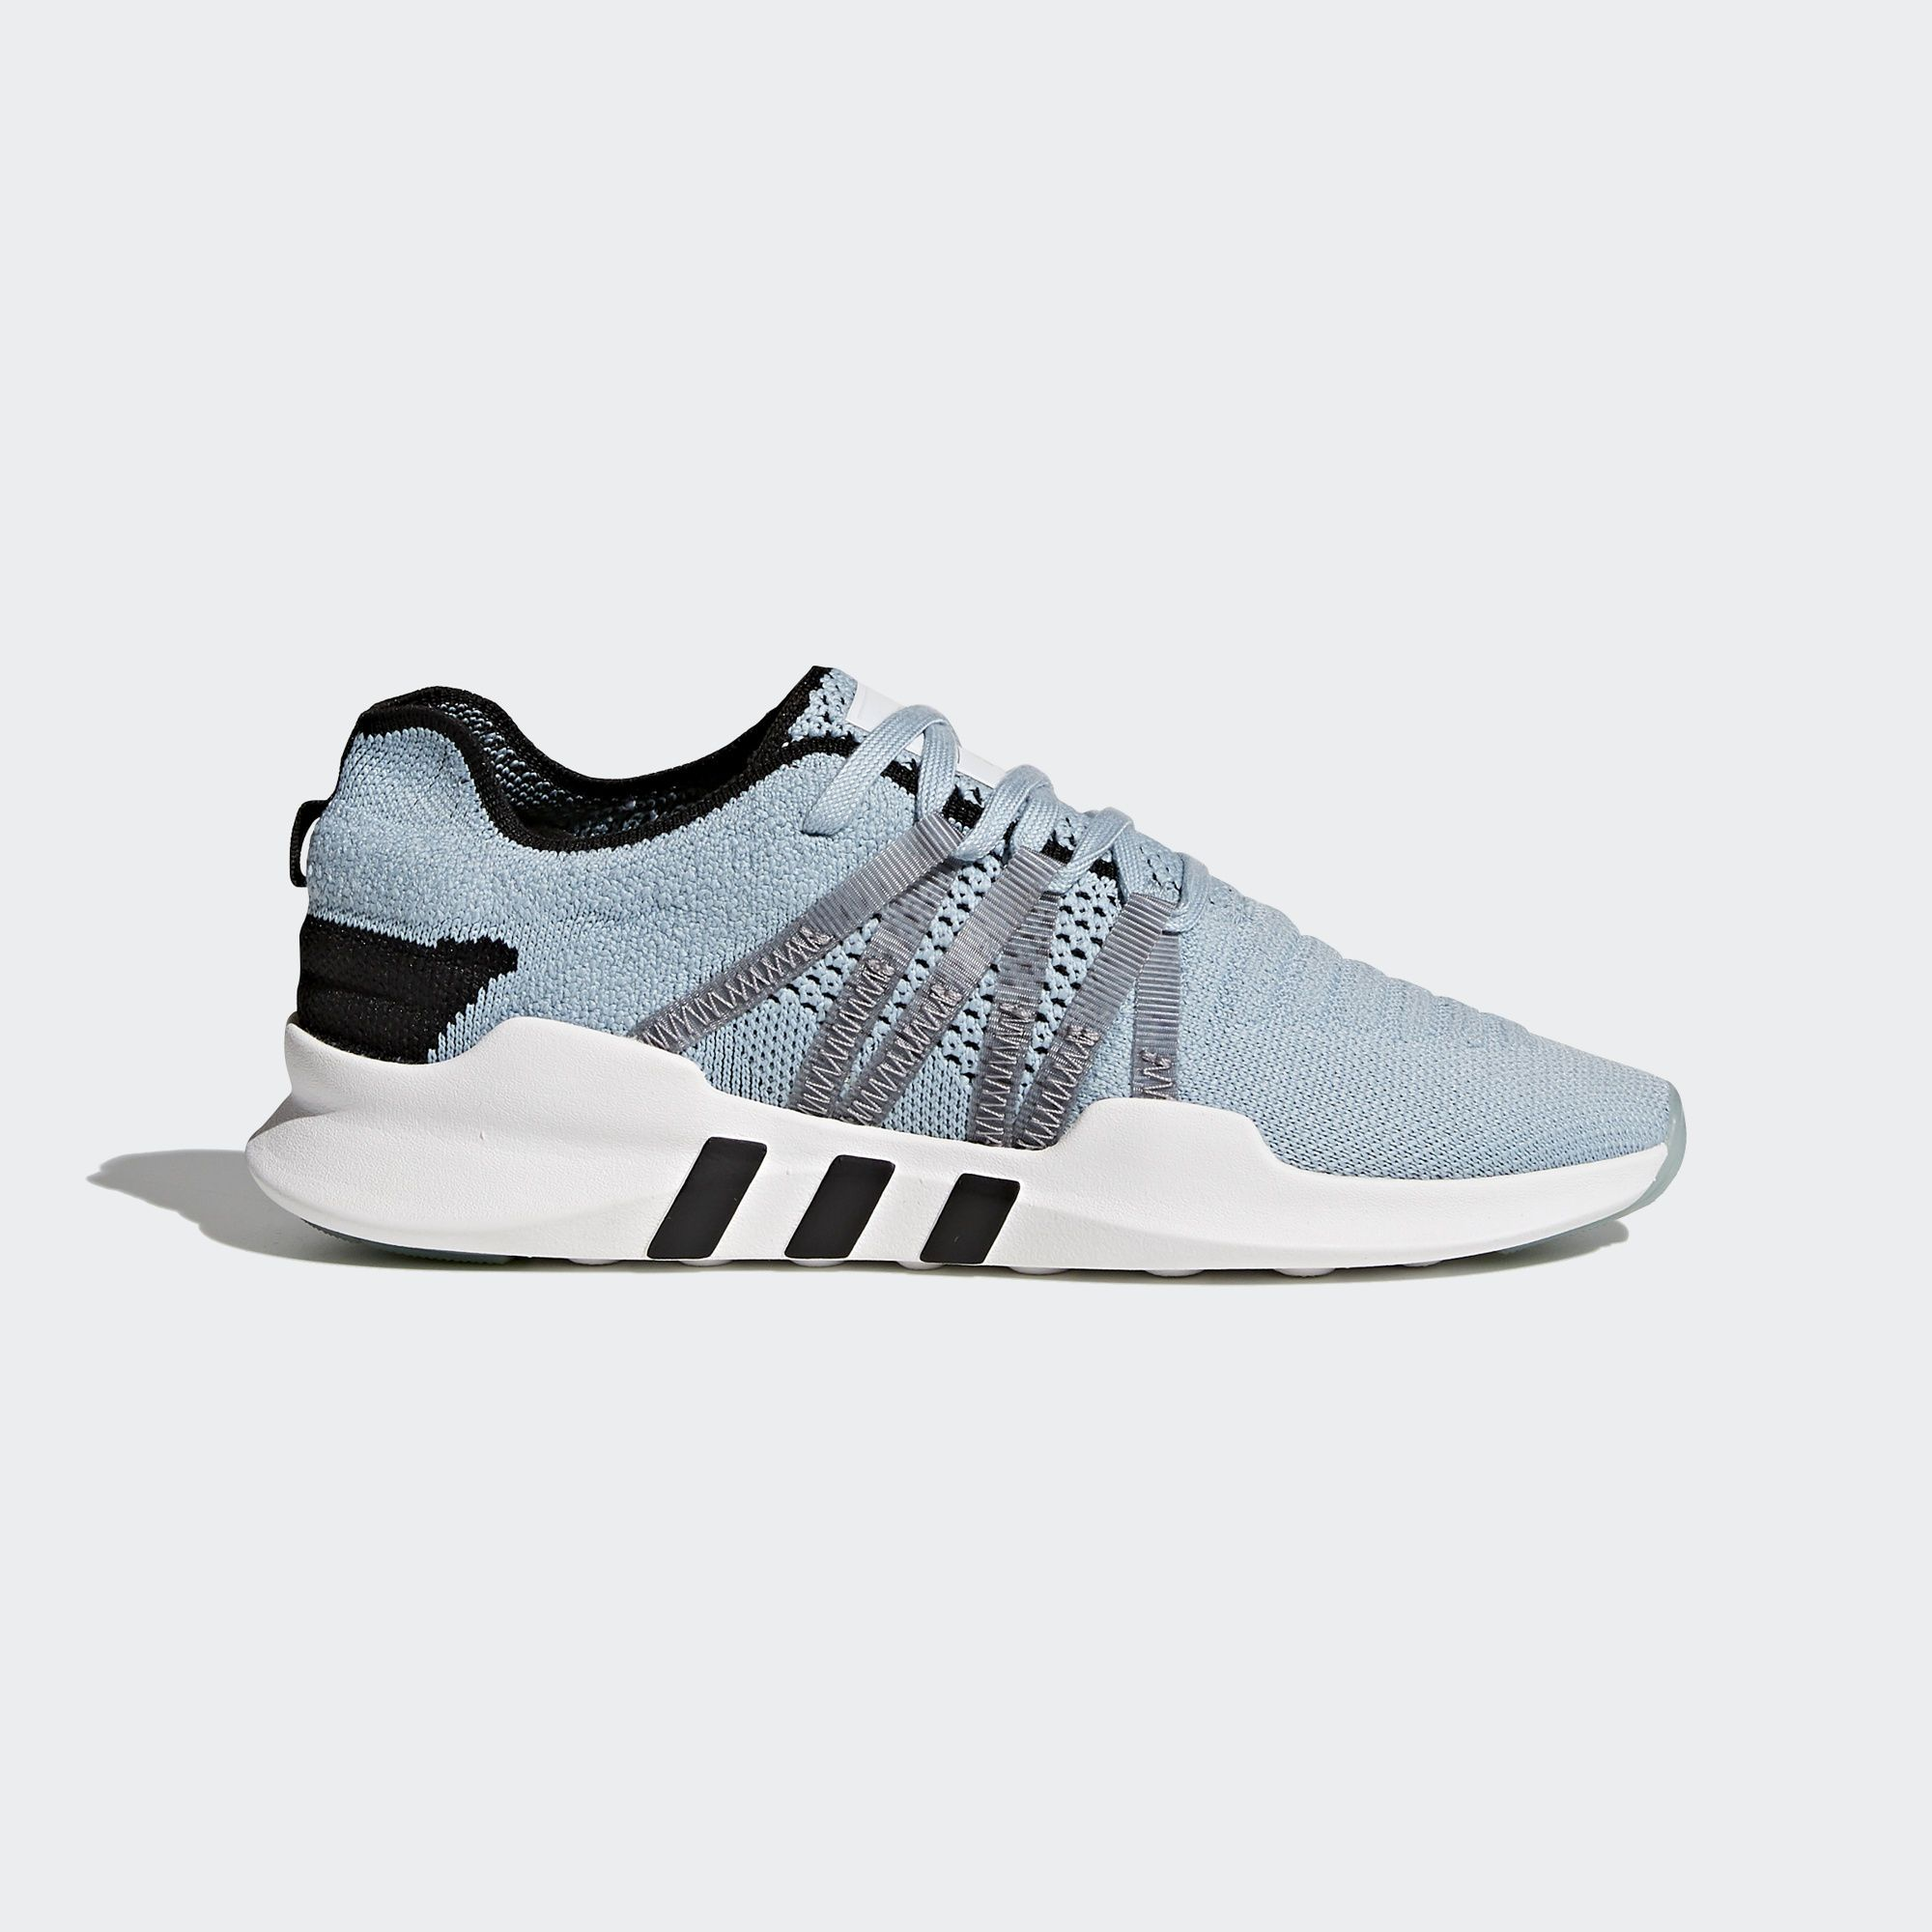 0d823682d8b4 Shop the EQT Racing ADV Primeknit Shoes - Blue at adidas.com us! See all  the styles and colors of EQT Racing ADV Primeknit Shoes - Blue at the  official ...